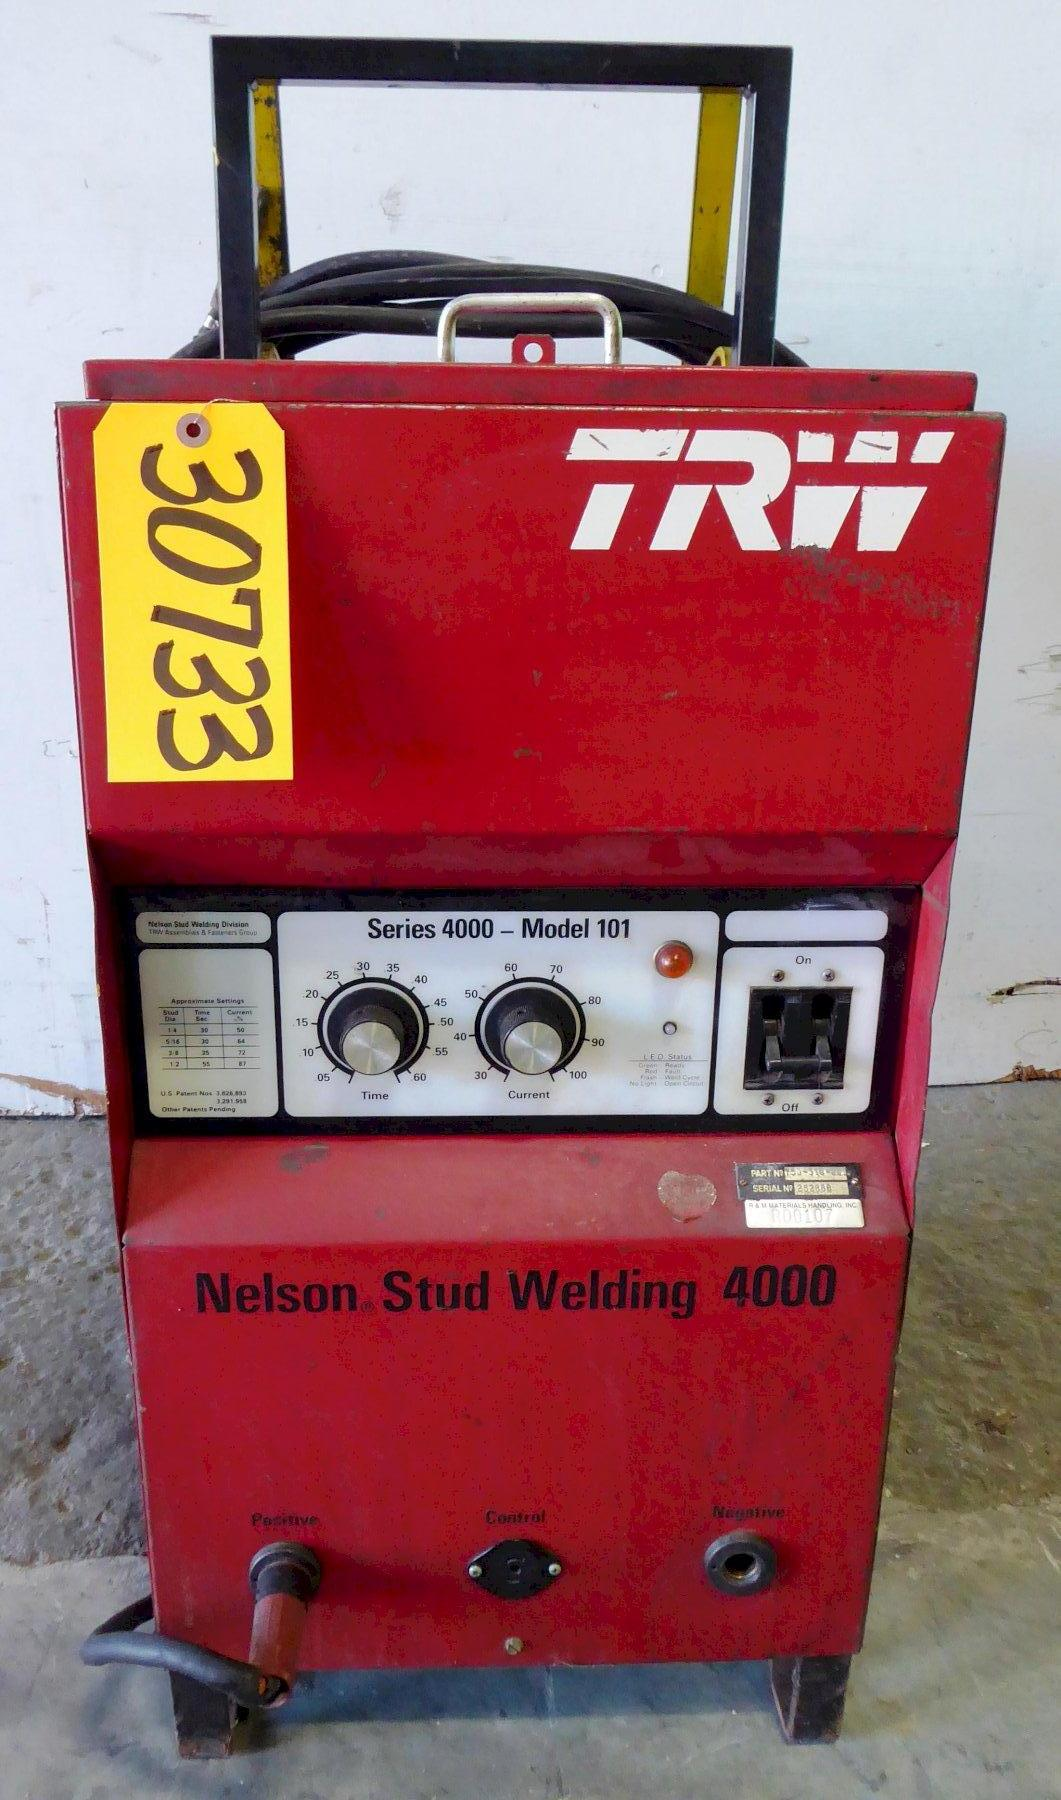 Nelson Stud Welder Series 4000 Model 101, Part No. 750-510-000, Welder and cables, No gun